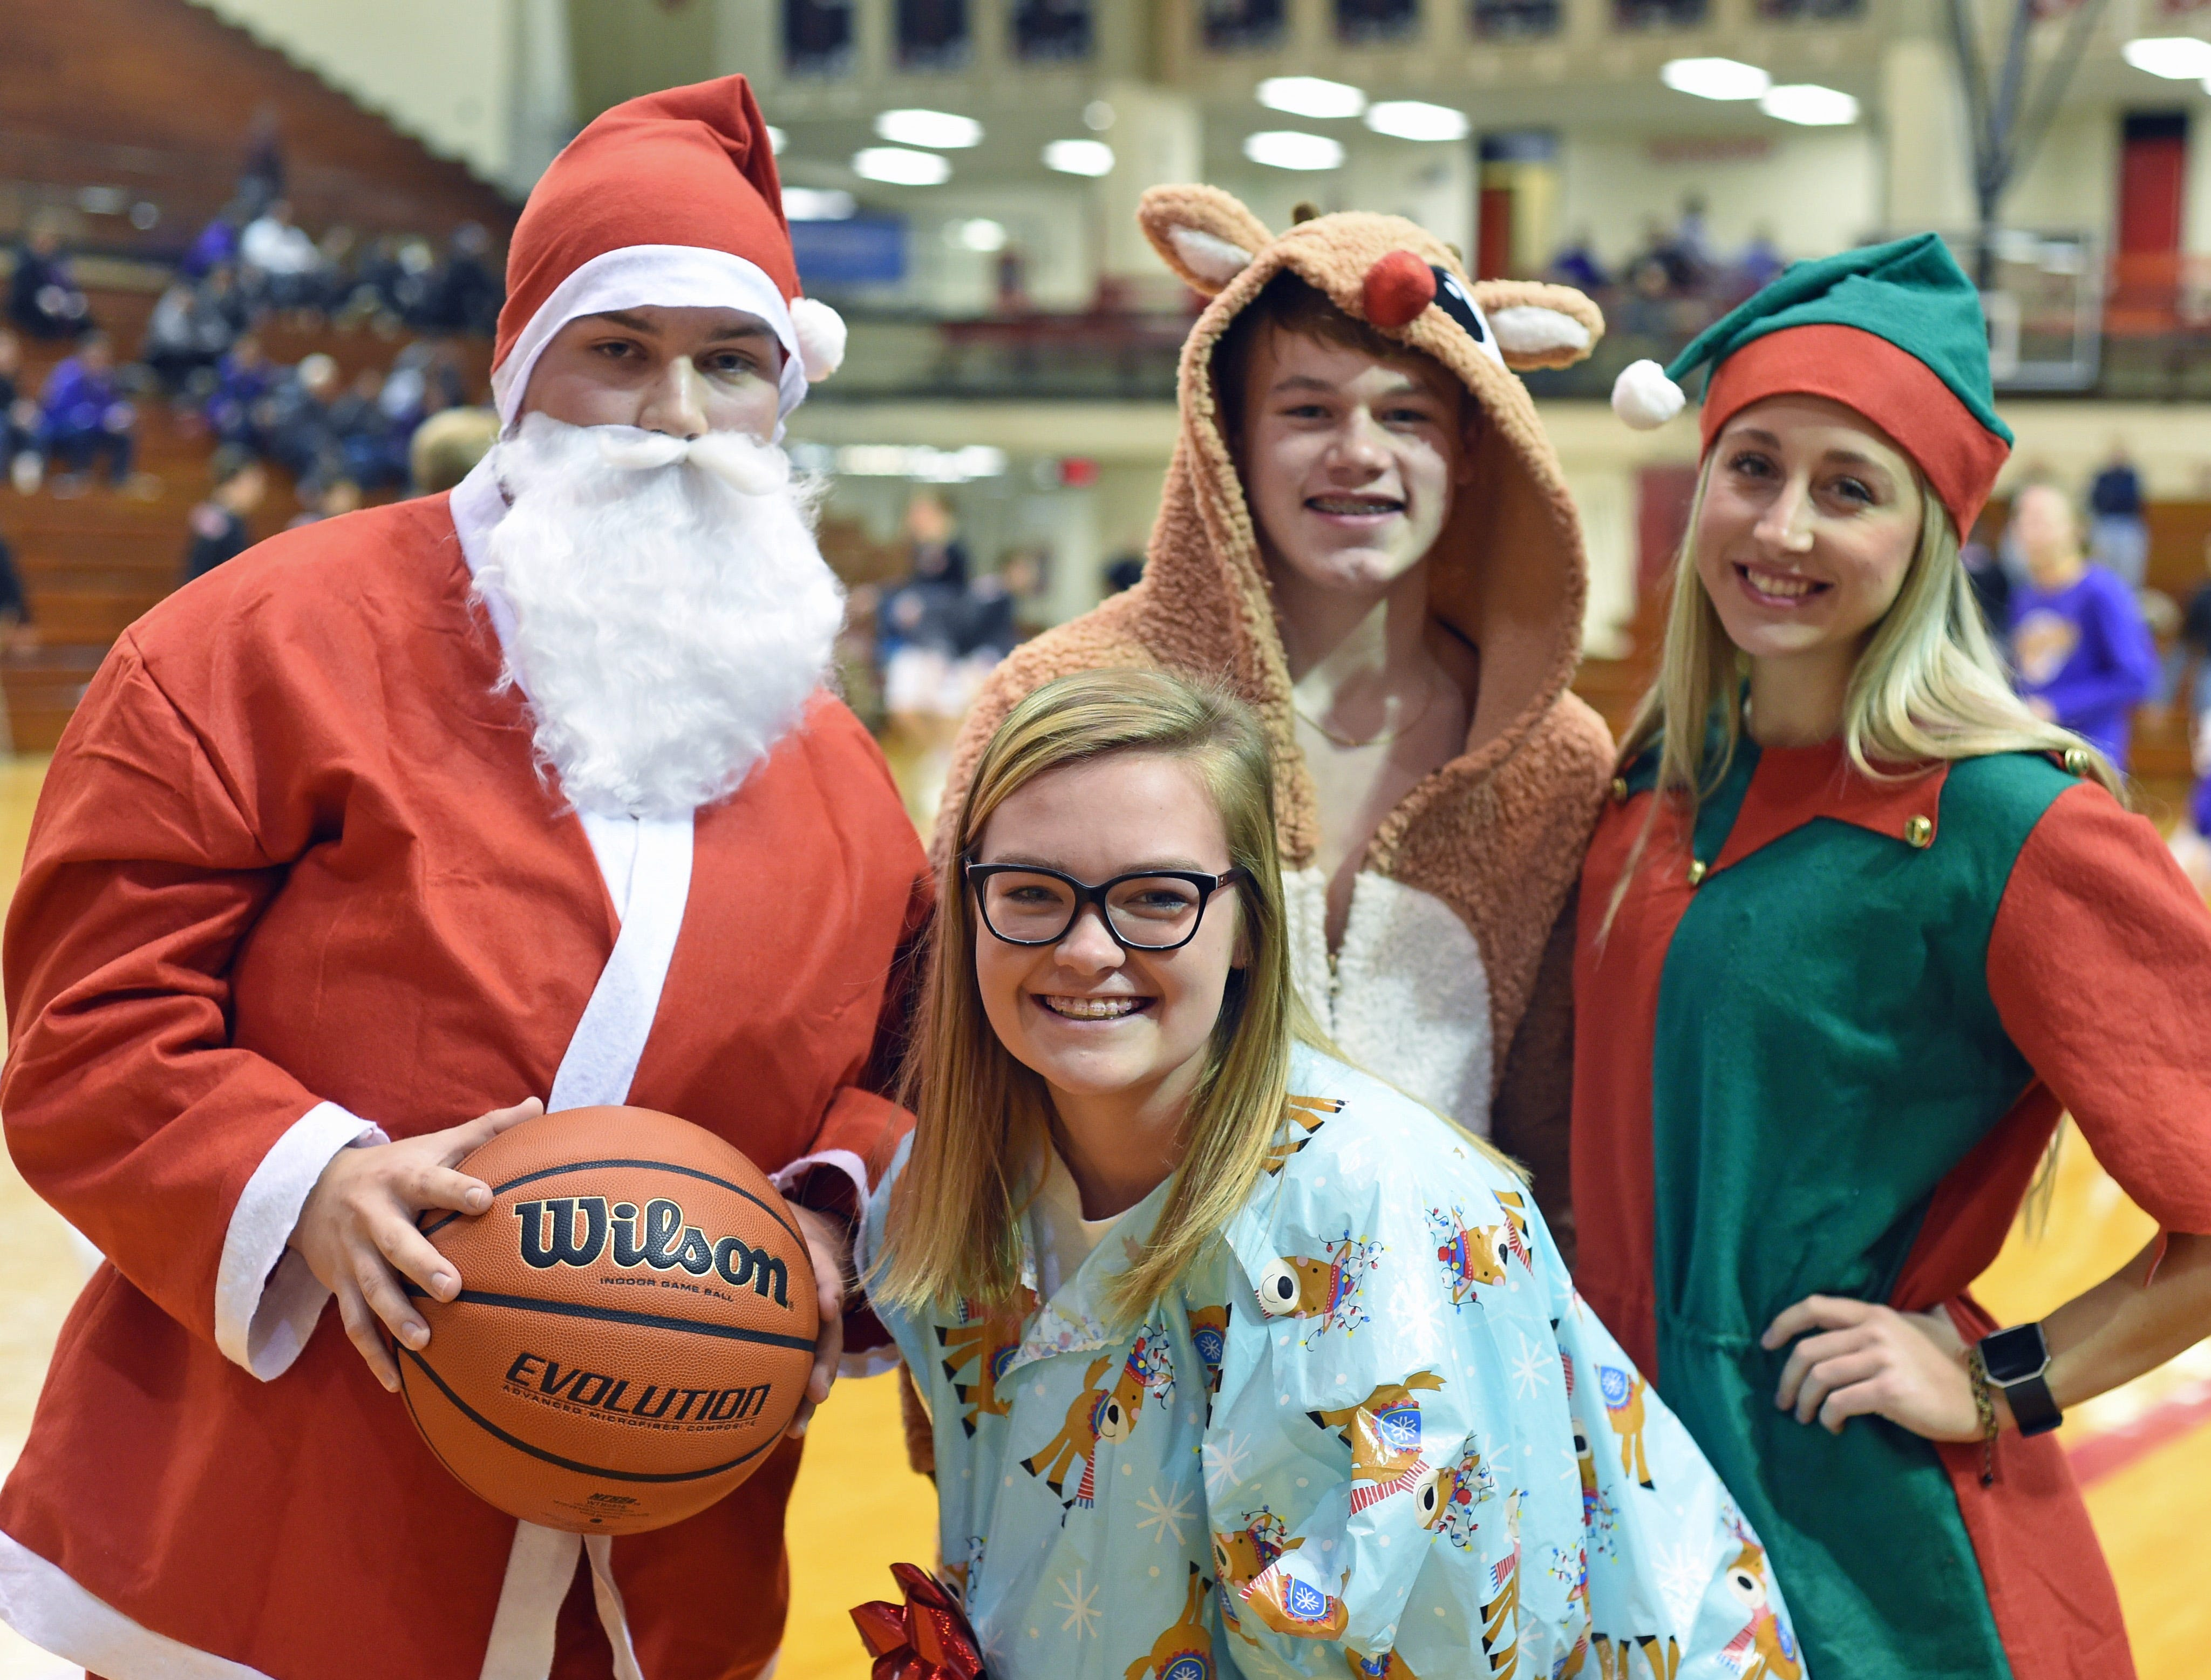 Santa and his North Pole helpers made an early appearance Saturday night to cheer the Lafayette Jeff Bronchos to a win over the Guerin Golden Eagles. Helping Santa out were Nate Franklin, Maddie Jones, Steven Stephany and Emilee Cox.